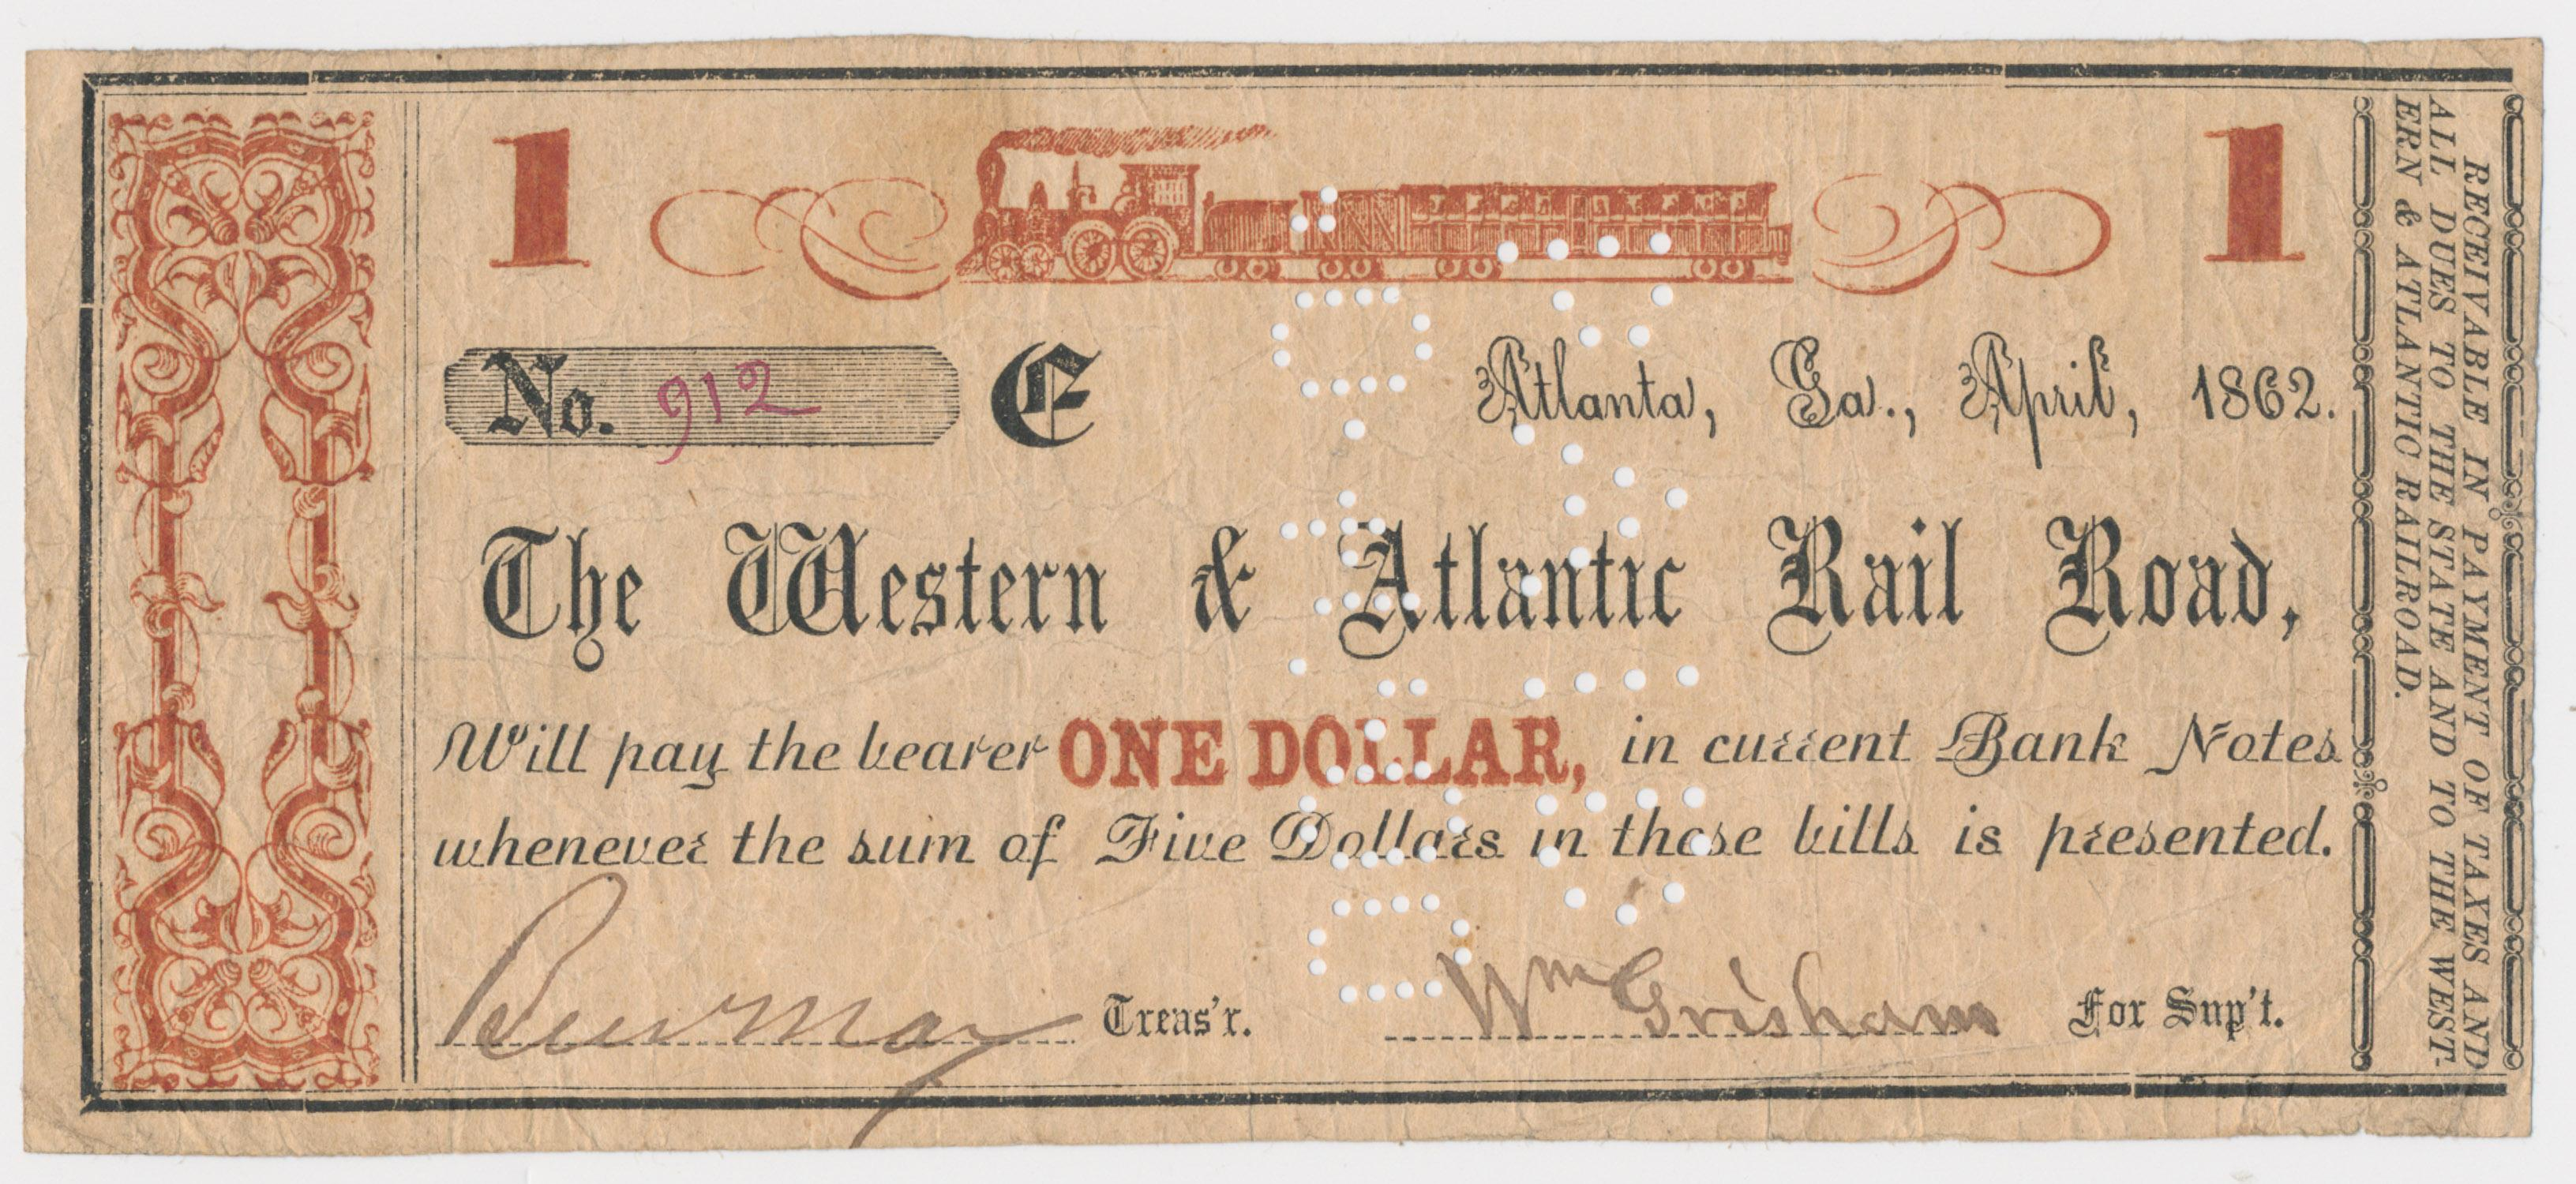 'THE GREAT LOCOMOTIVE CHASE' BANK NOTE